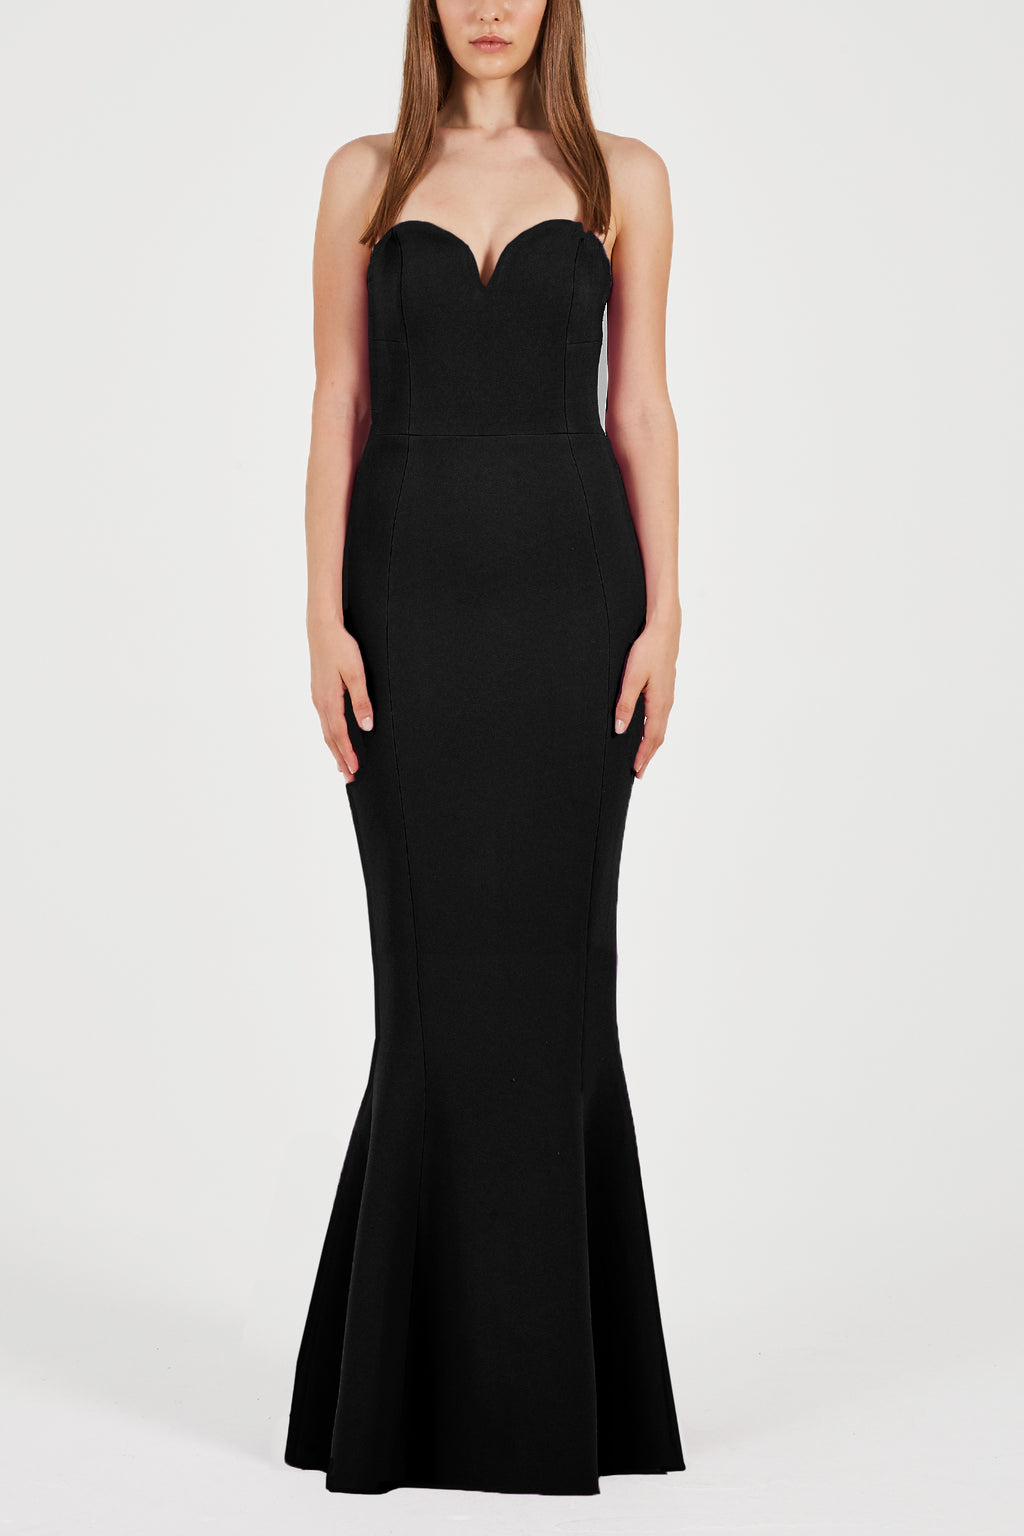 Rebecca Vallance Dahlia Gown in Black